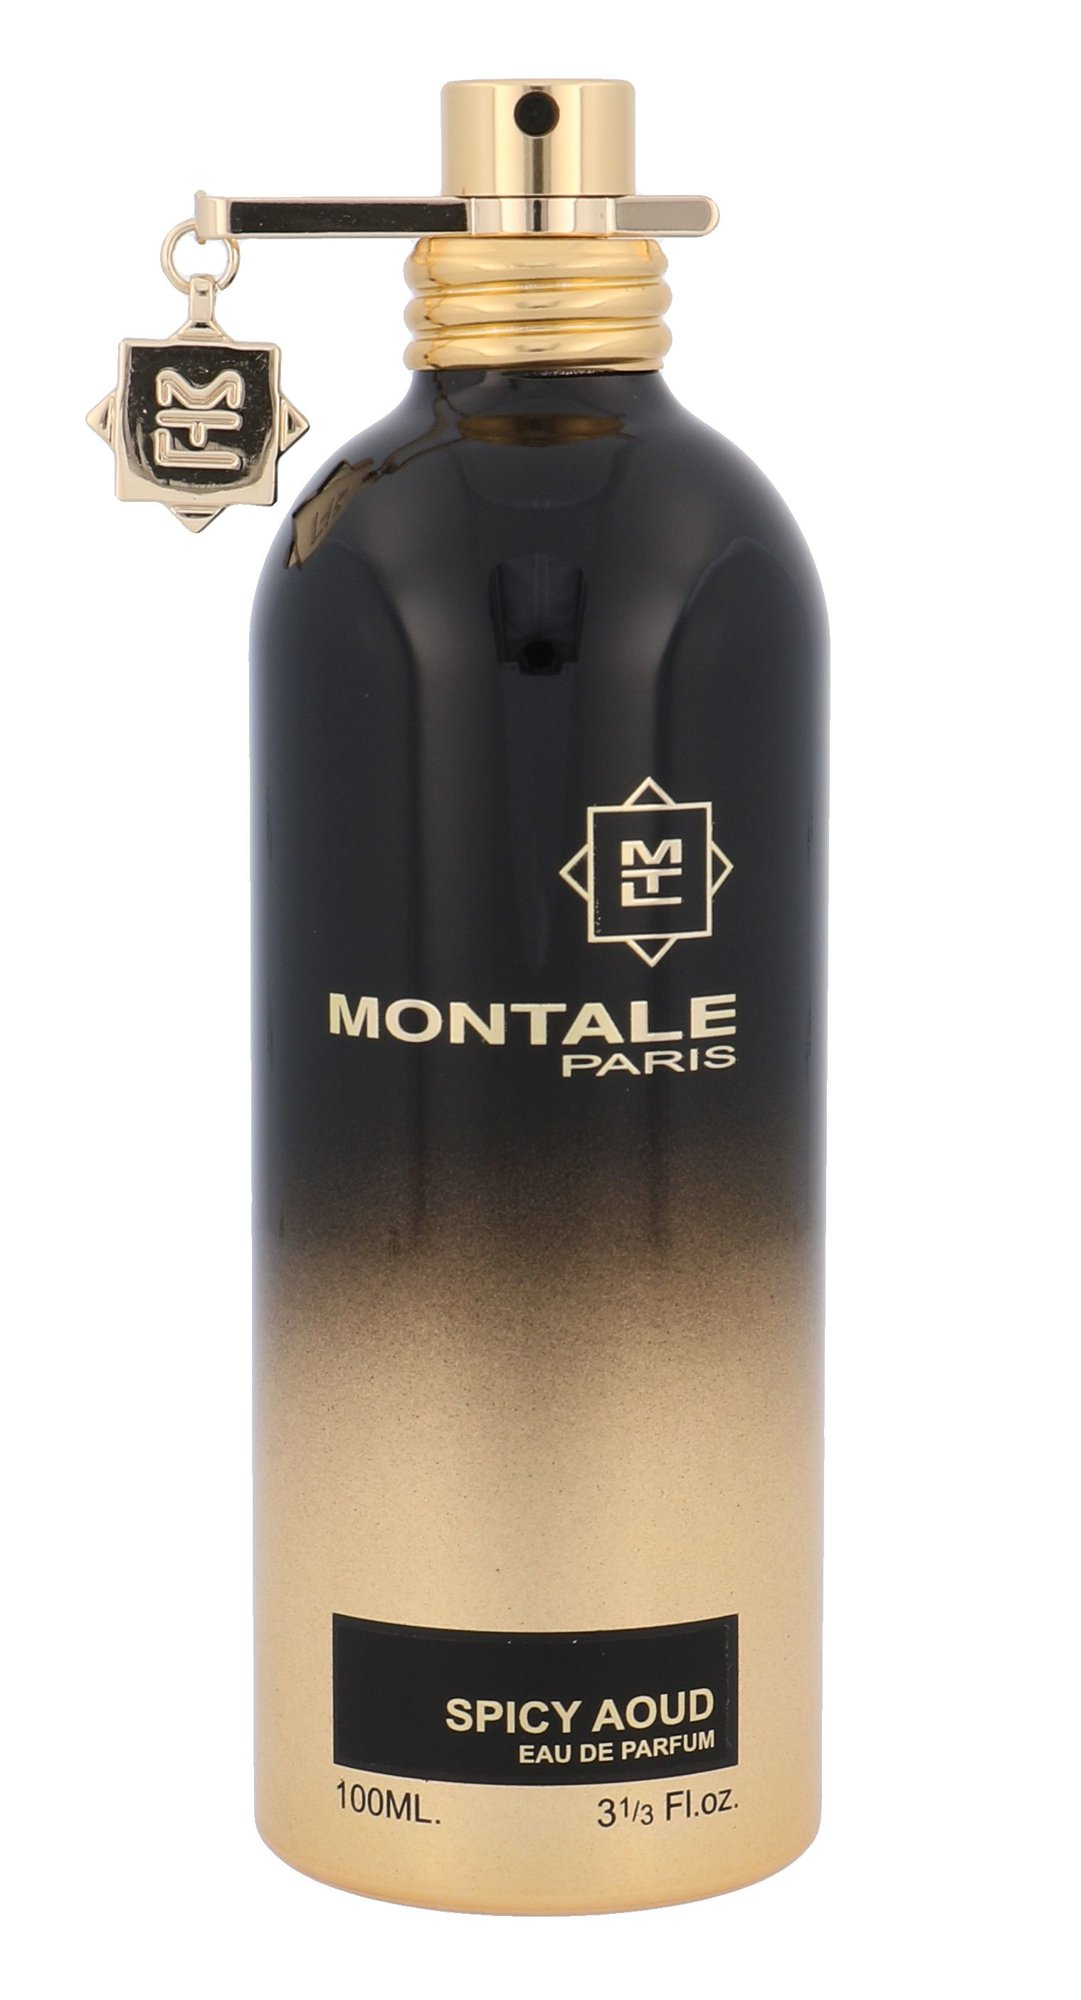 Montale Paris Spicy Aoud EDP 100ml